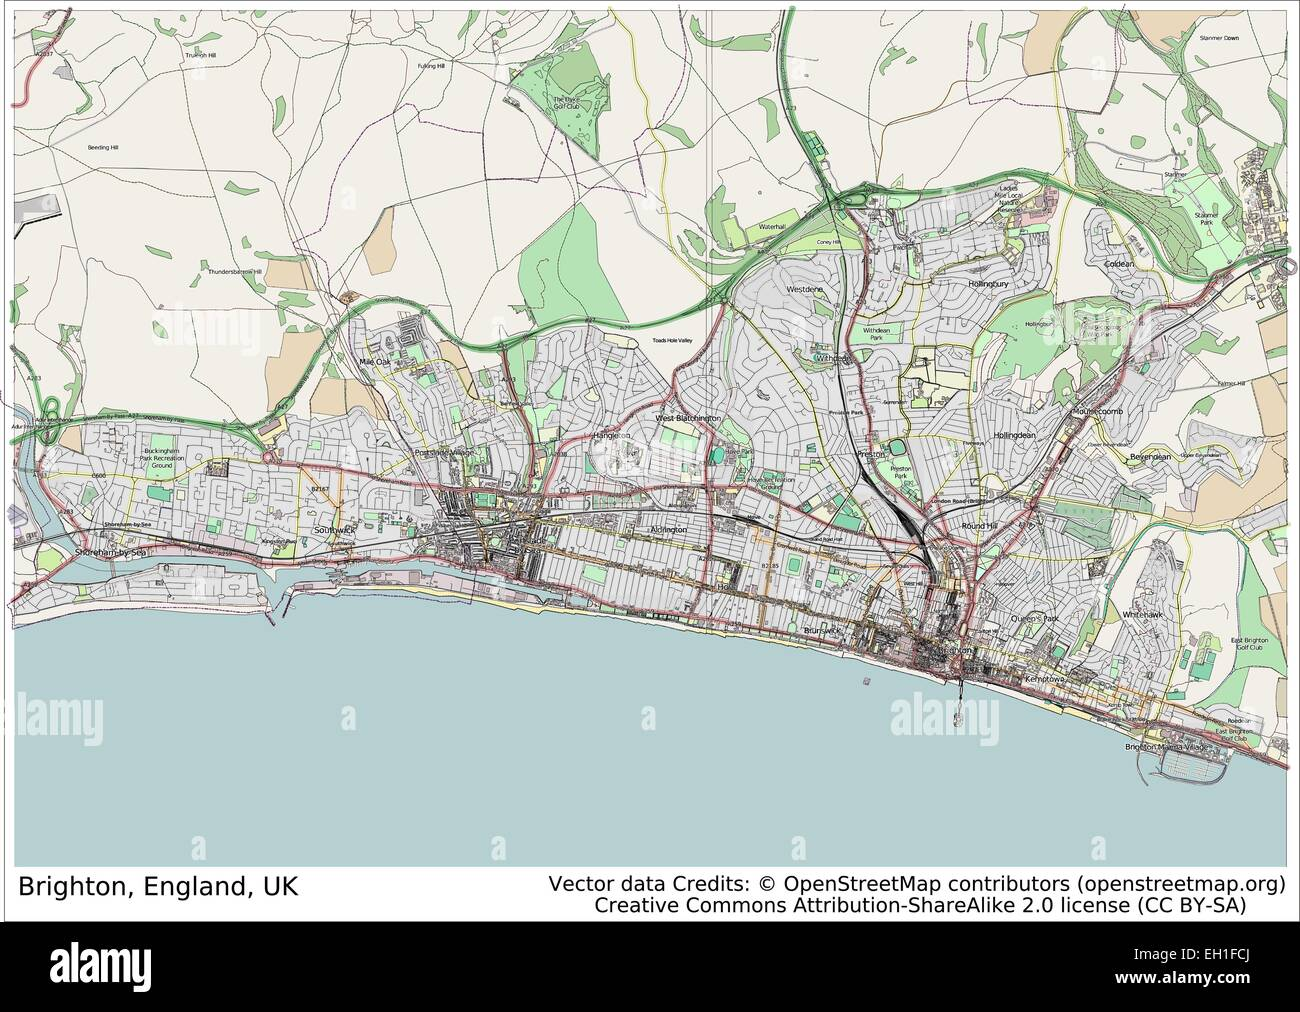 Map Of England Brighton.Brighton England Uk City Map Stock Vector Art Illustration Vector